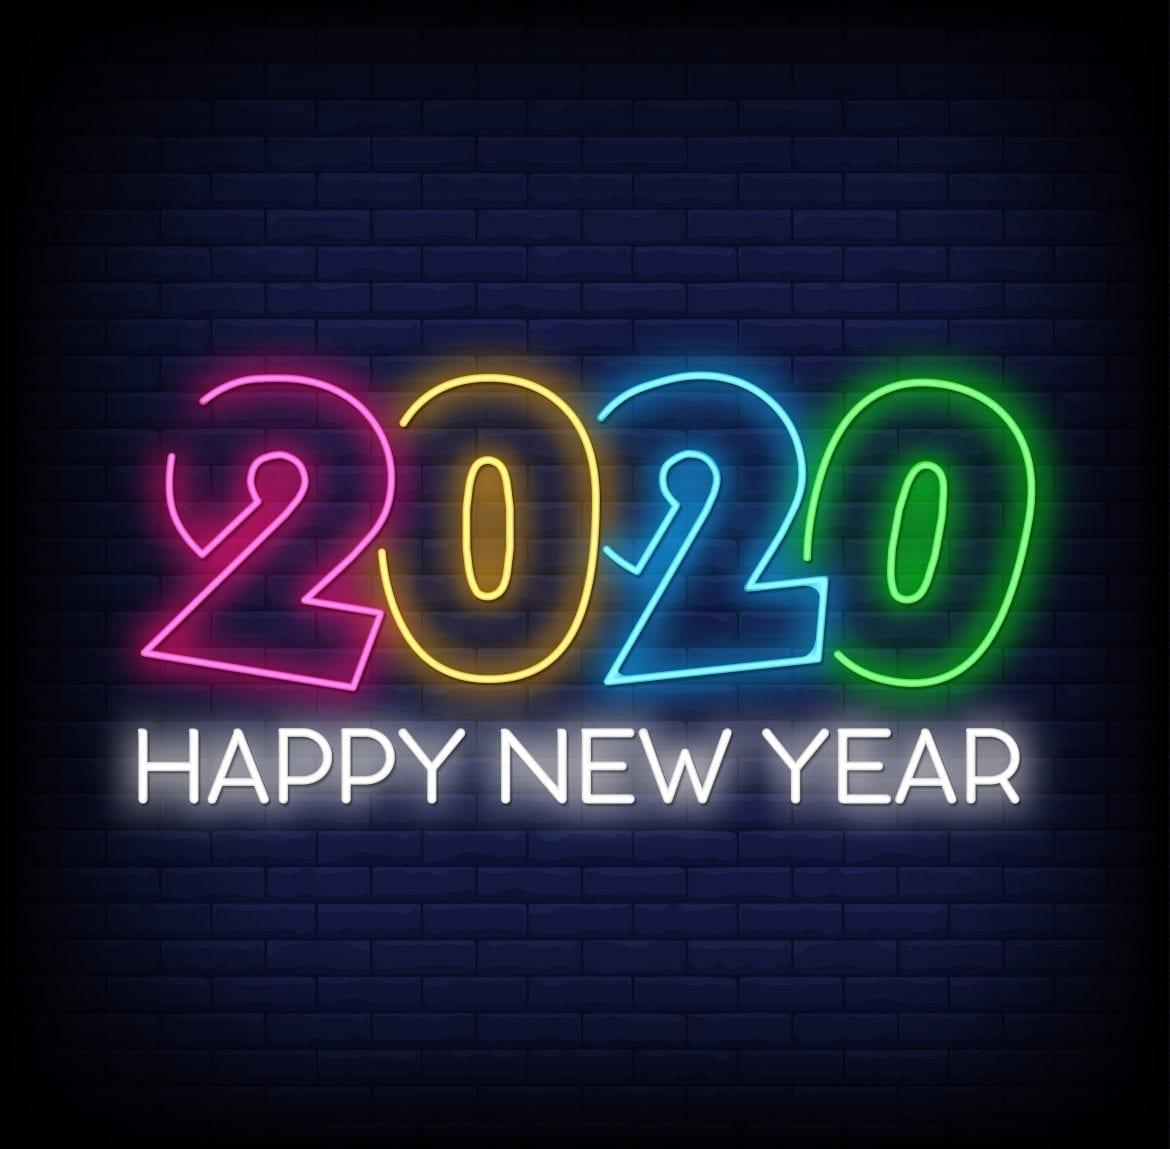 Happy New Year 2020 Wallpapers Image